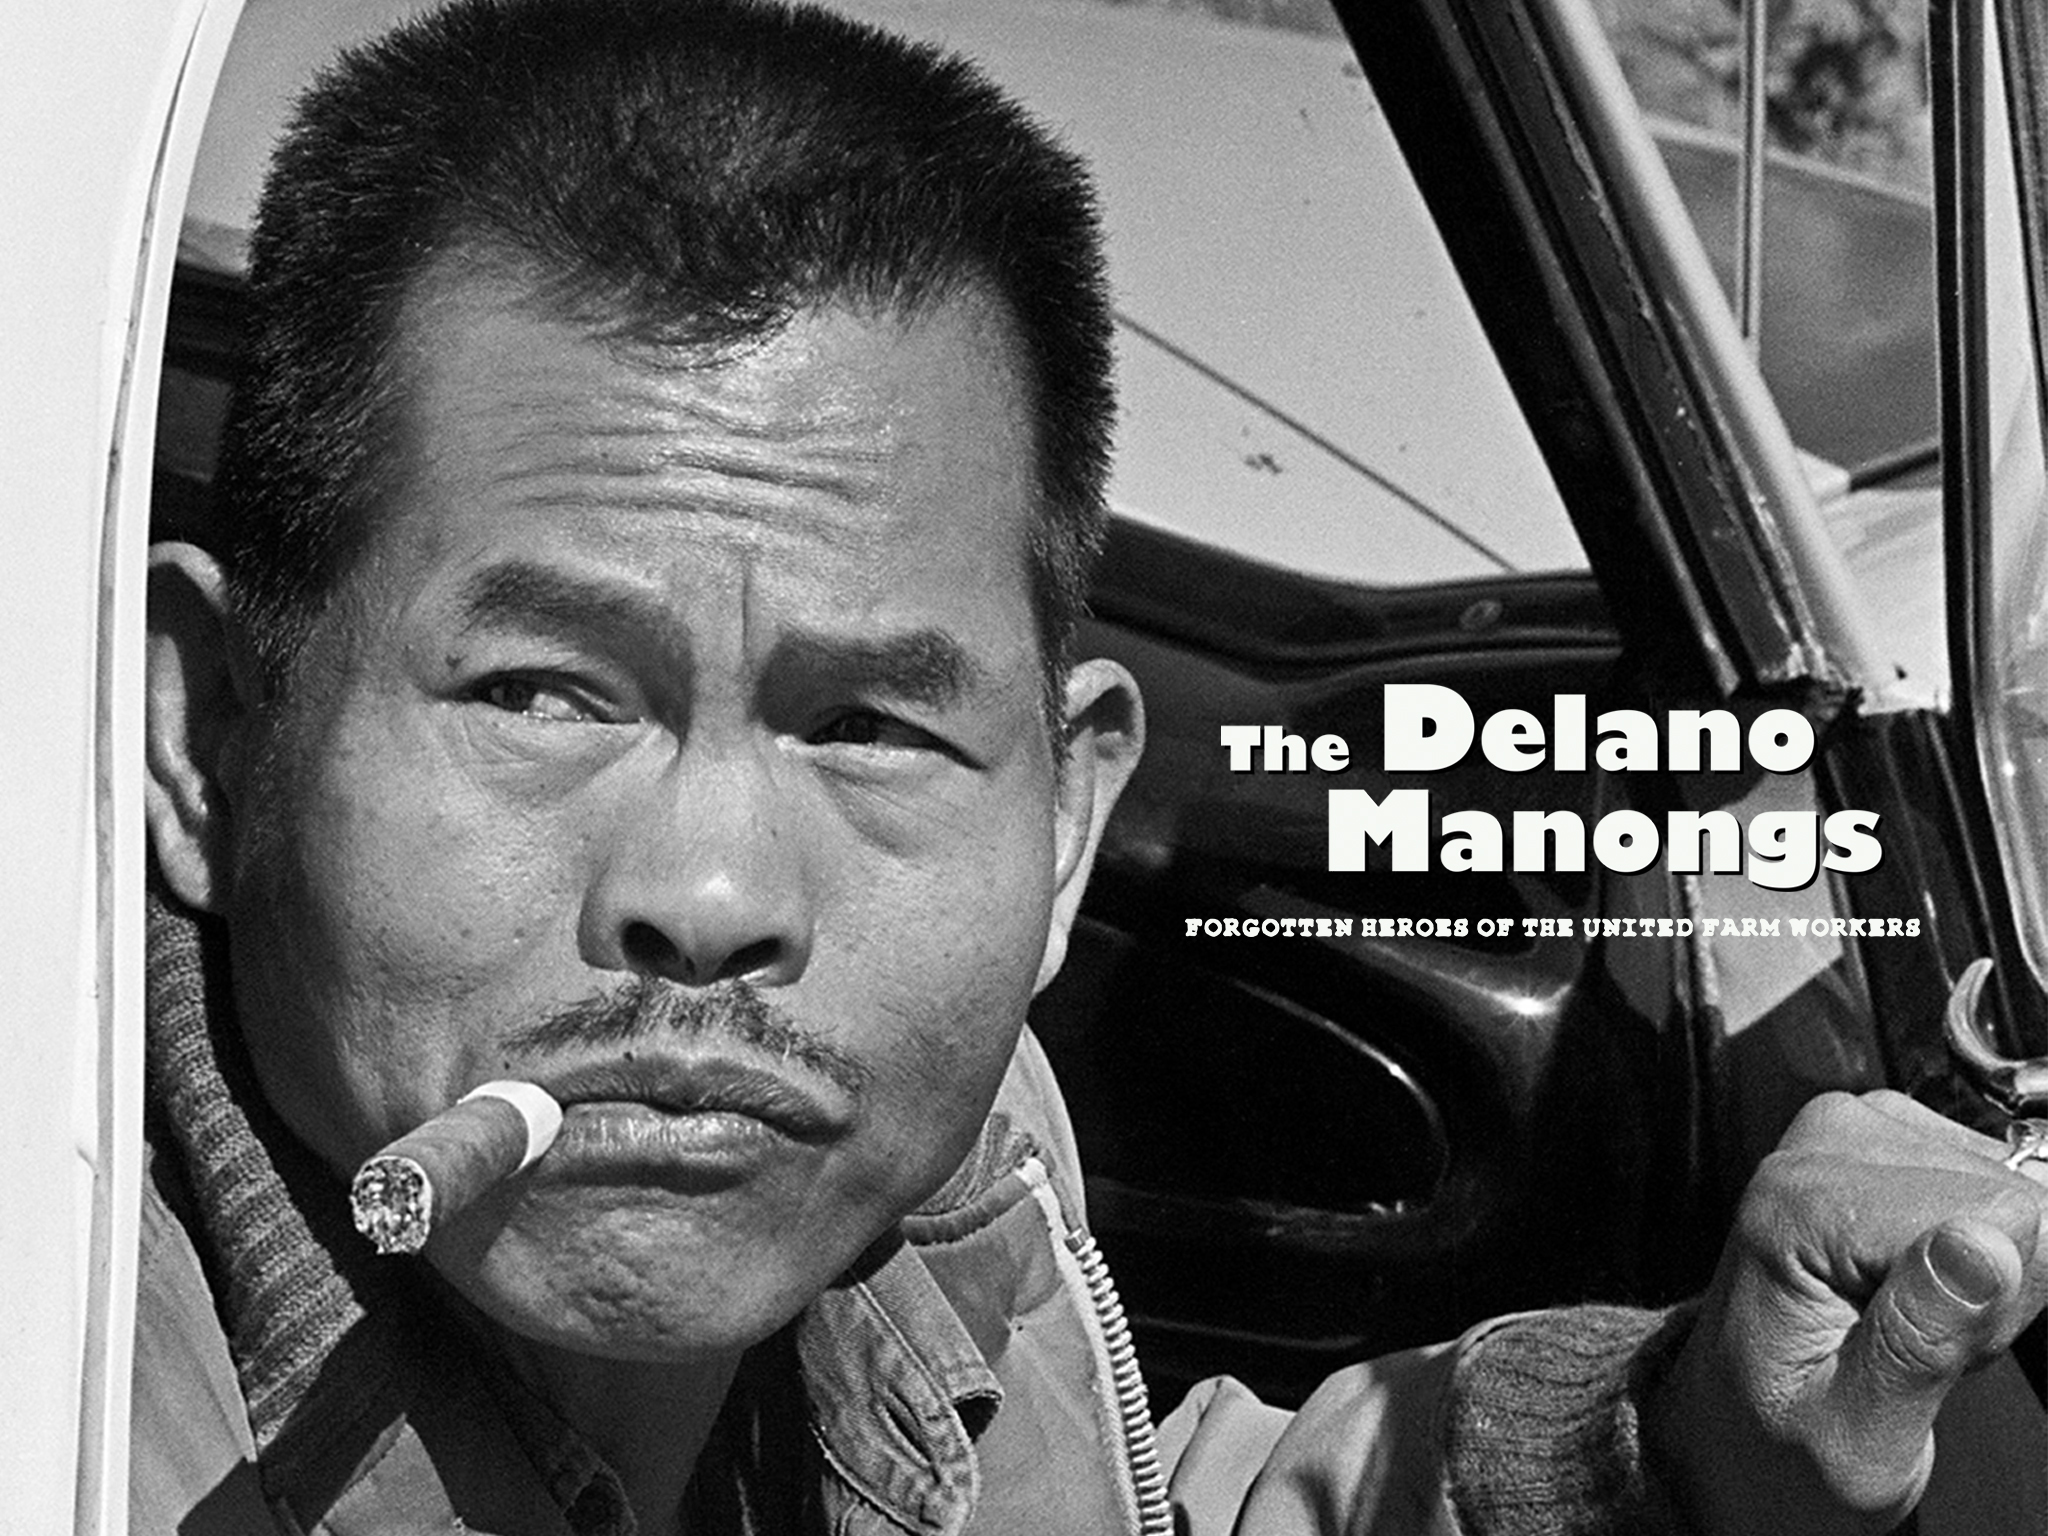 The overlooked story of how thousands of Filipino farmworkers contributed to forming the United Farm Workers unfolds. Directed by Marissa Aroy.